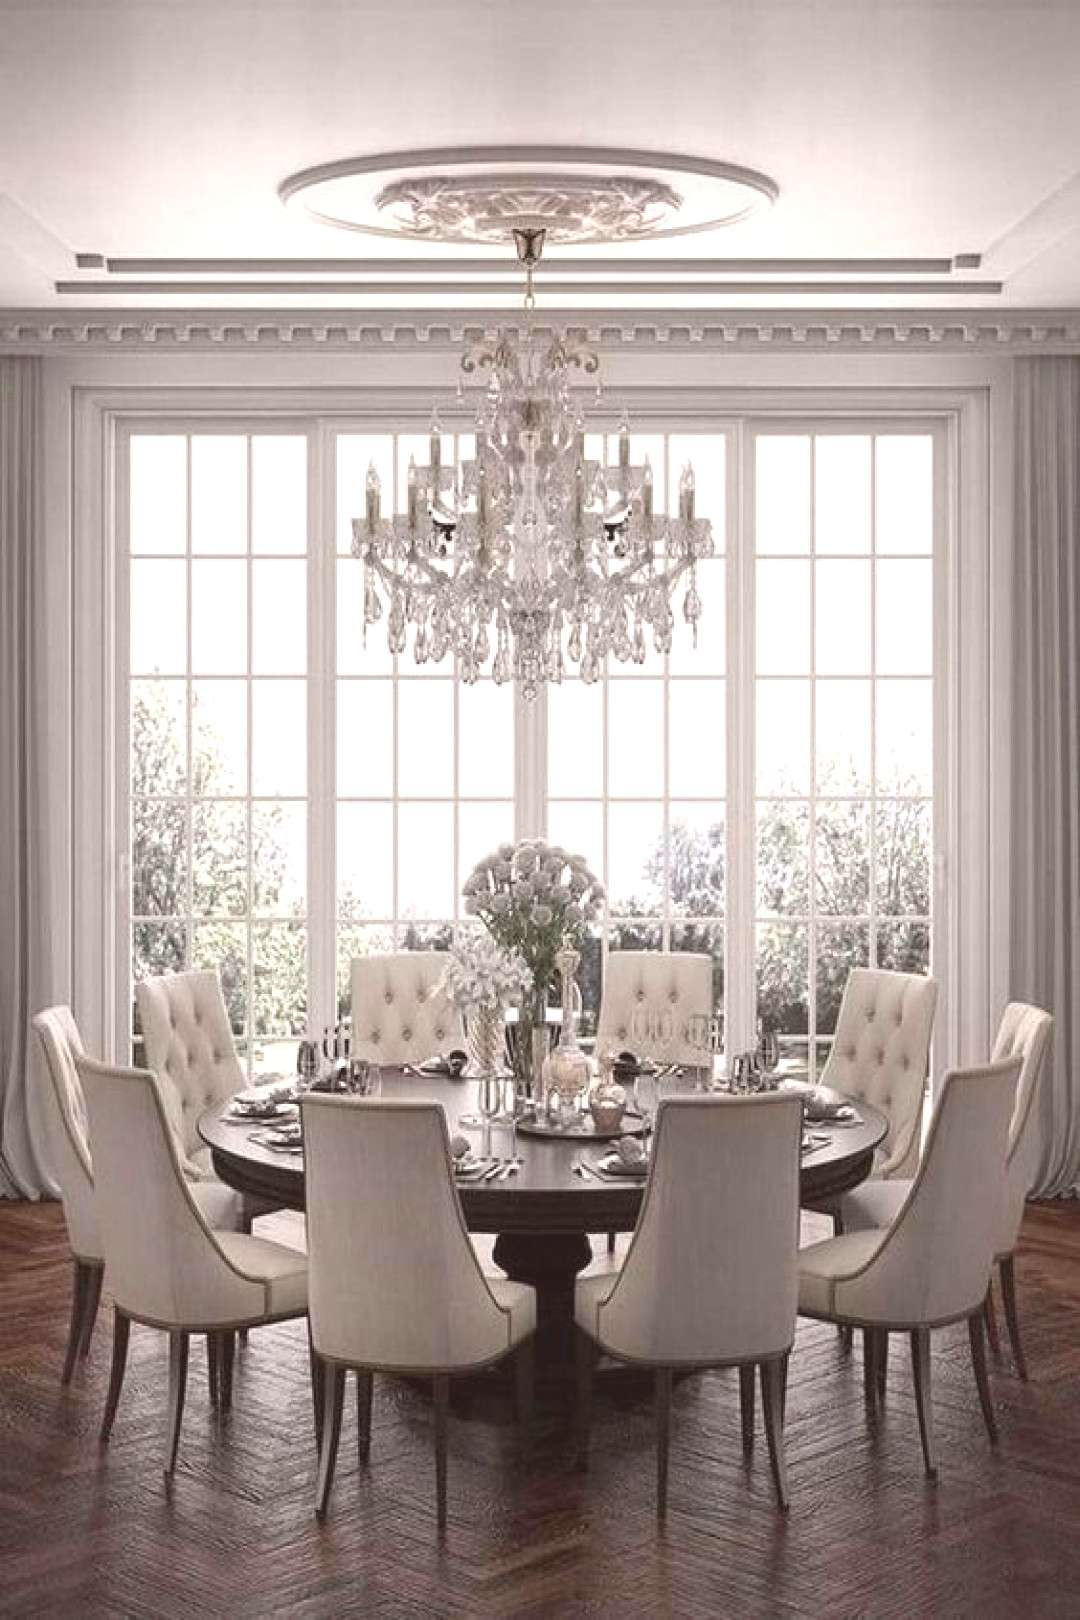 Transitional Dining Room Ideas 20+ Beautiful Inspirations to Steal |